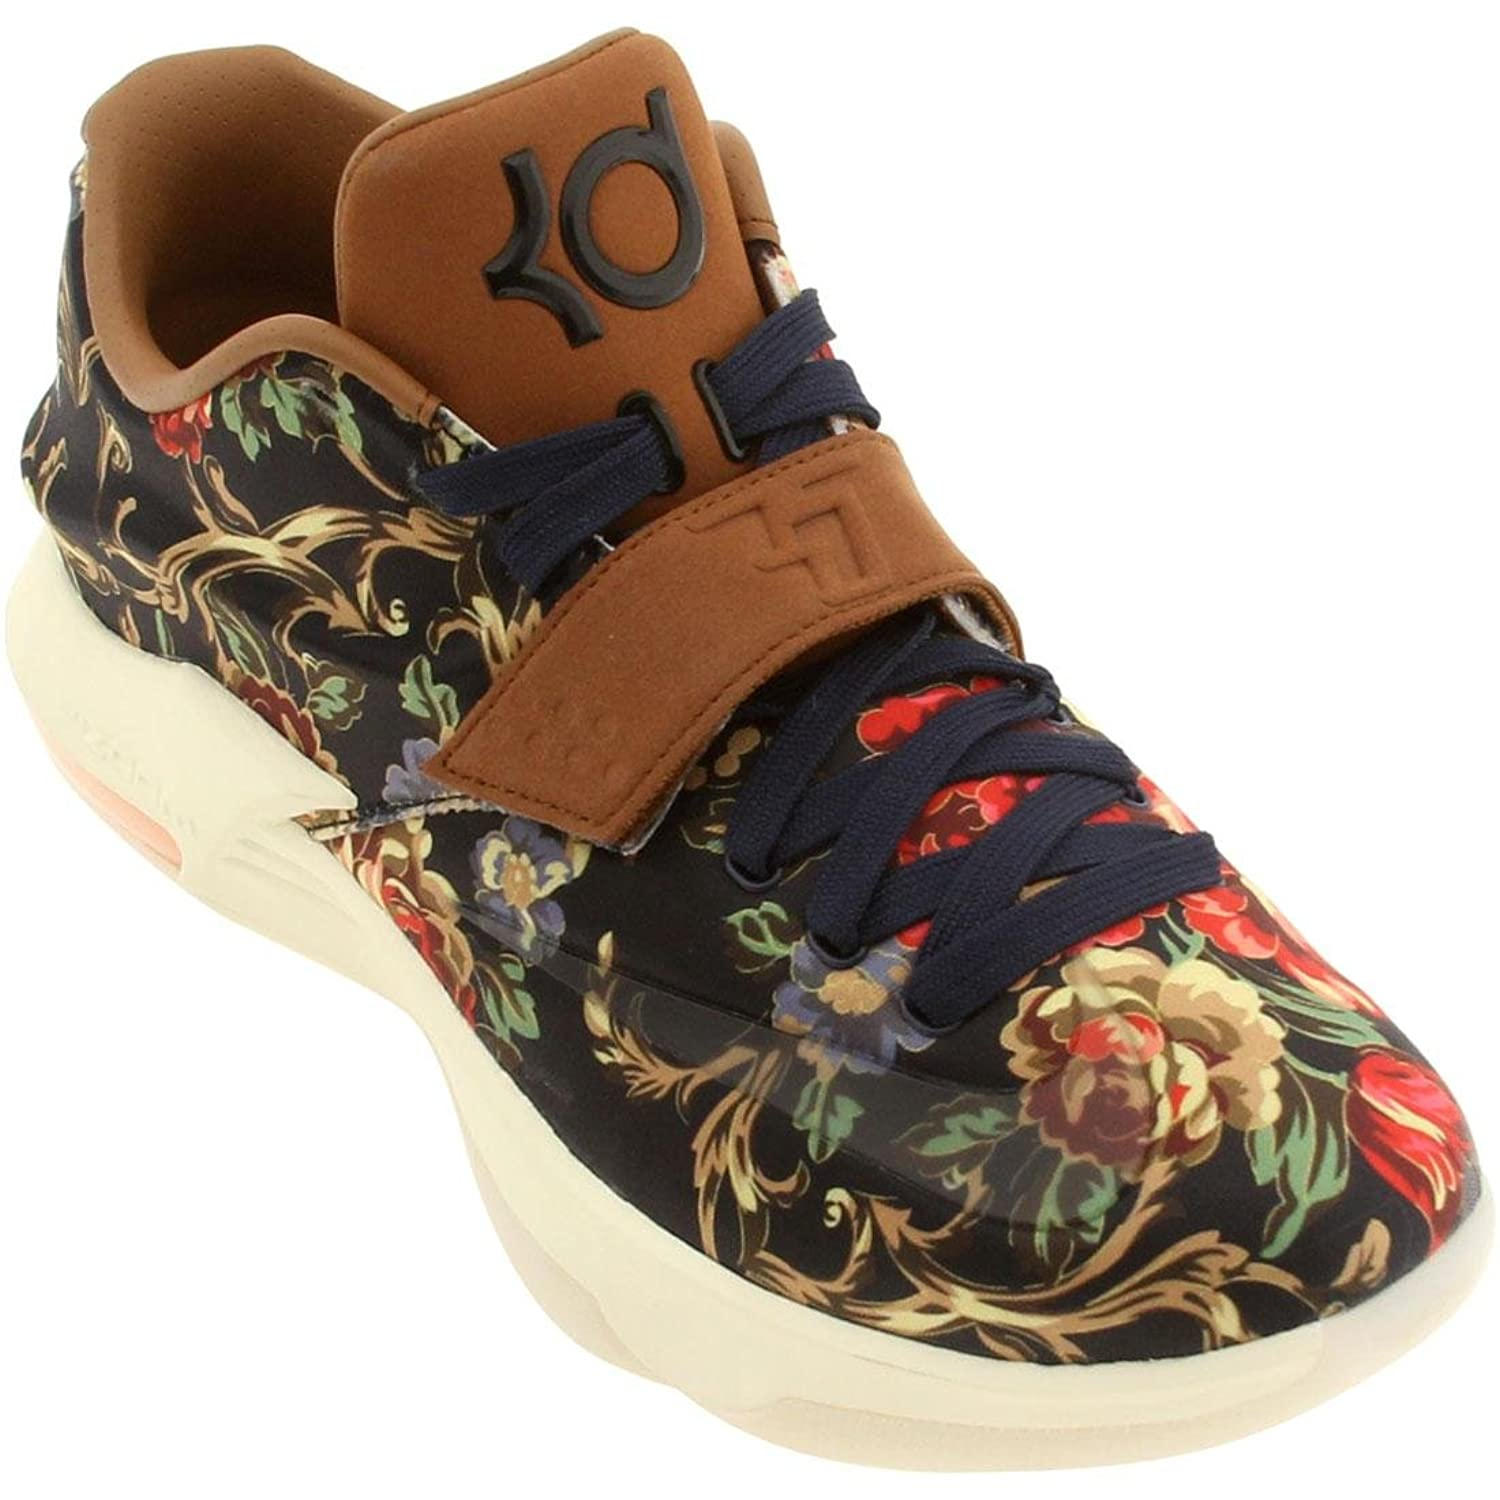 483e6bb3b3f7 ... where to buy amazon mens nike kd 7 ext floral qs floral basketball  shoes 726438 400